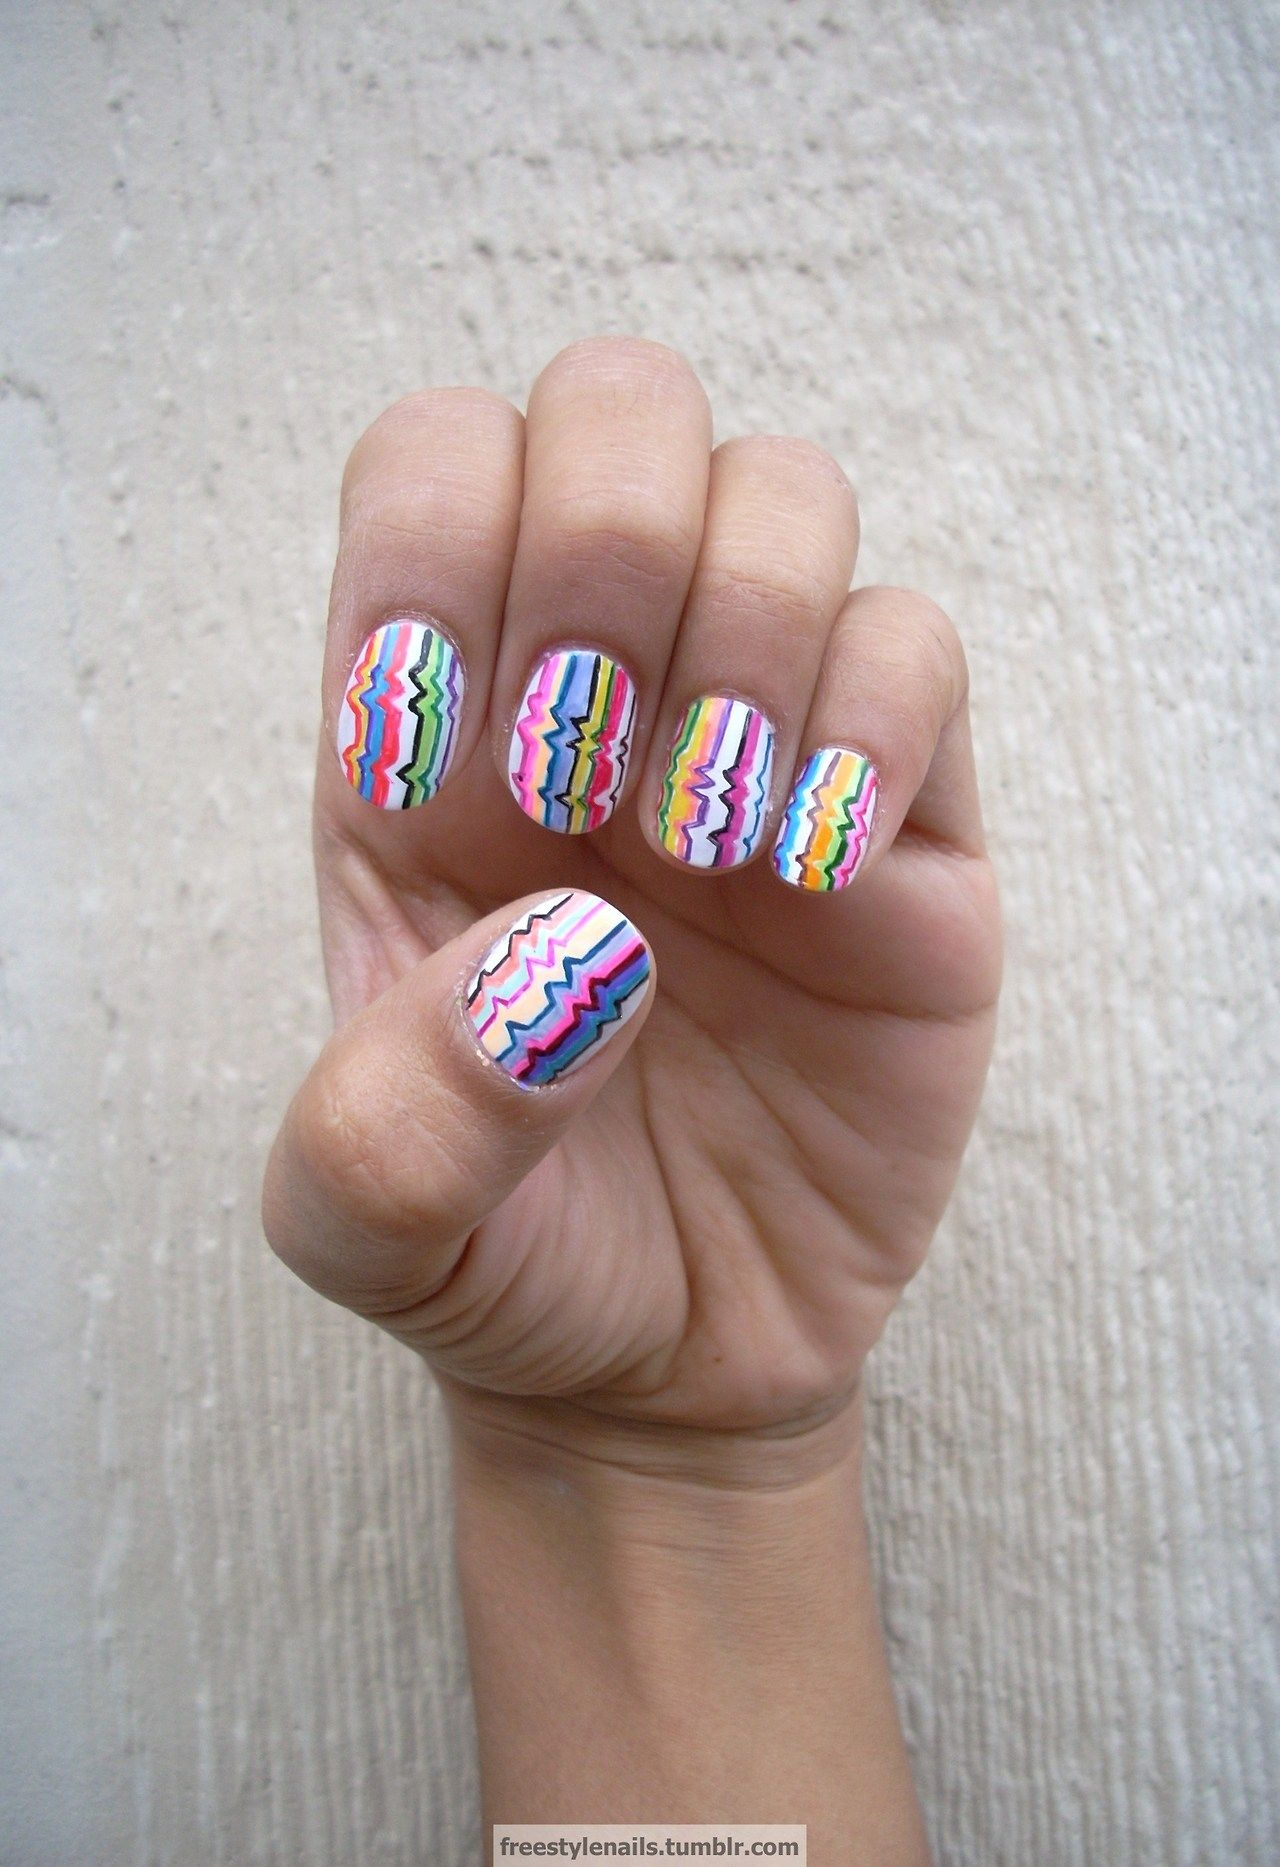 Freestyle nails for the masses #nail #nails #nailart | Crazy nail ...